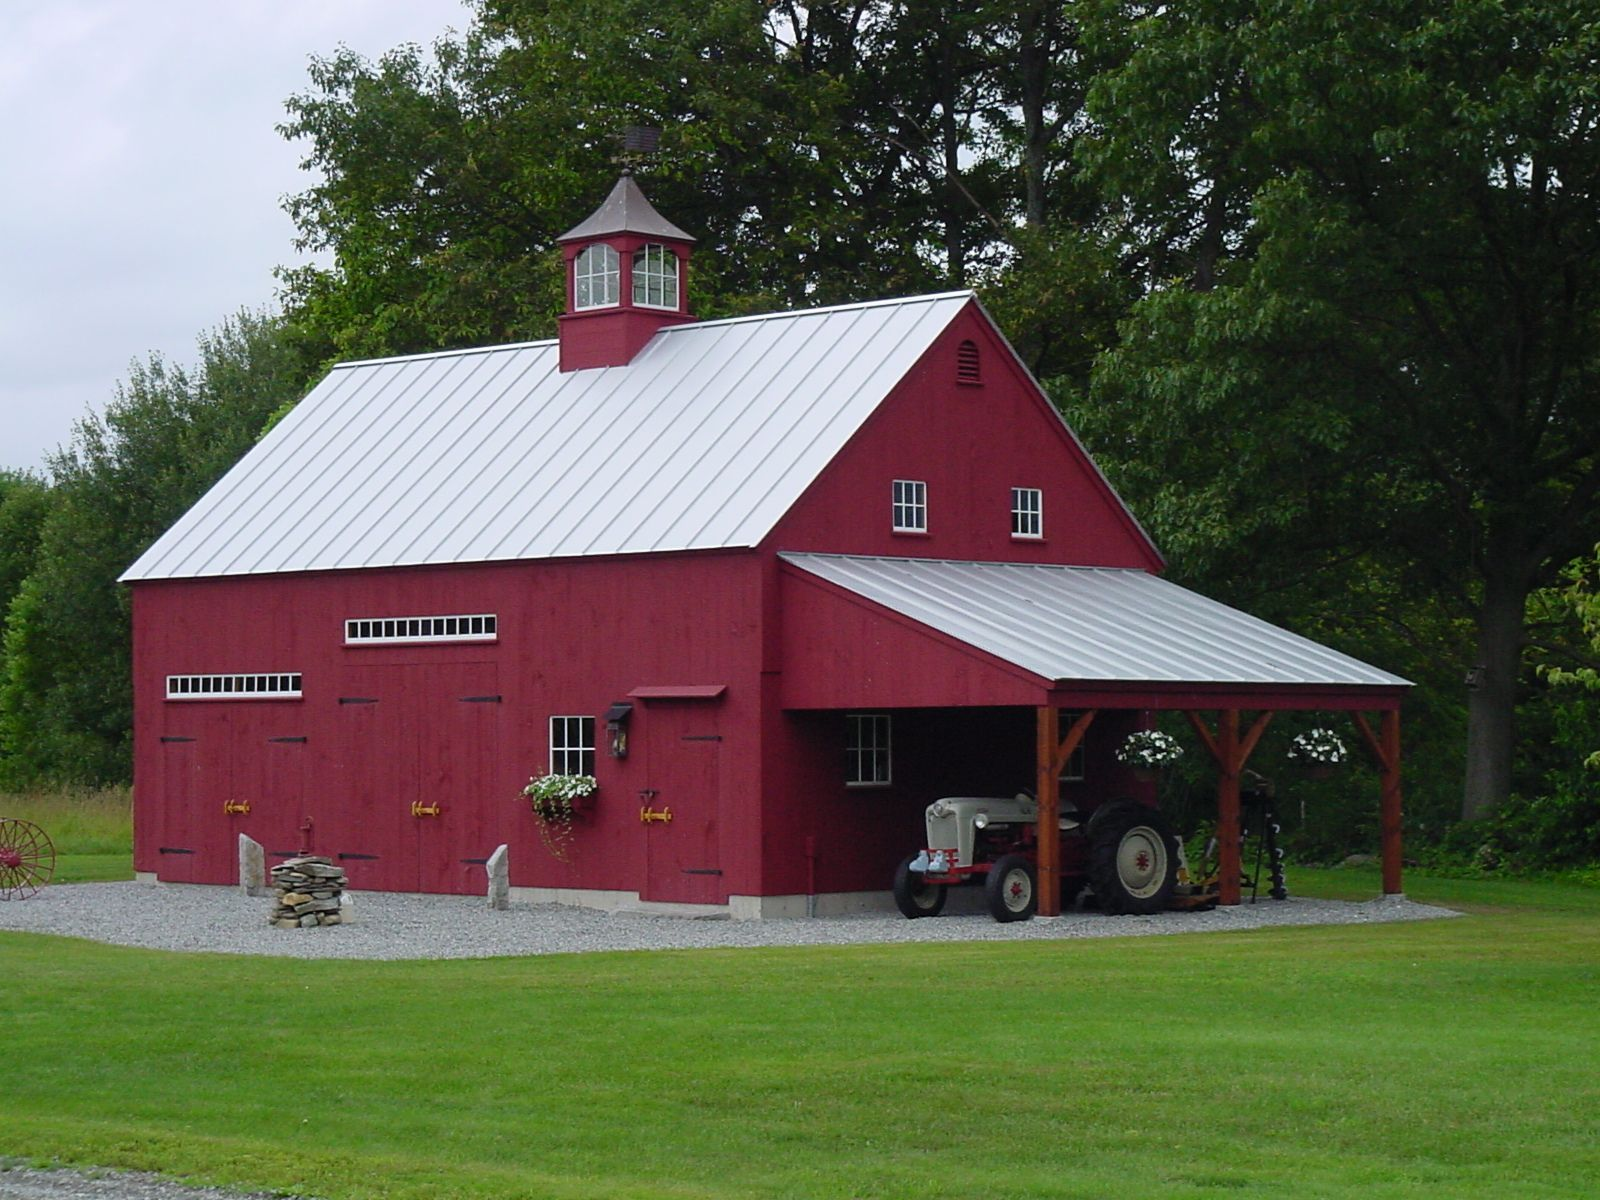 Our 11/2 Story Barn 22'x 36' with 12'x 20' open leanto